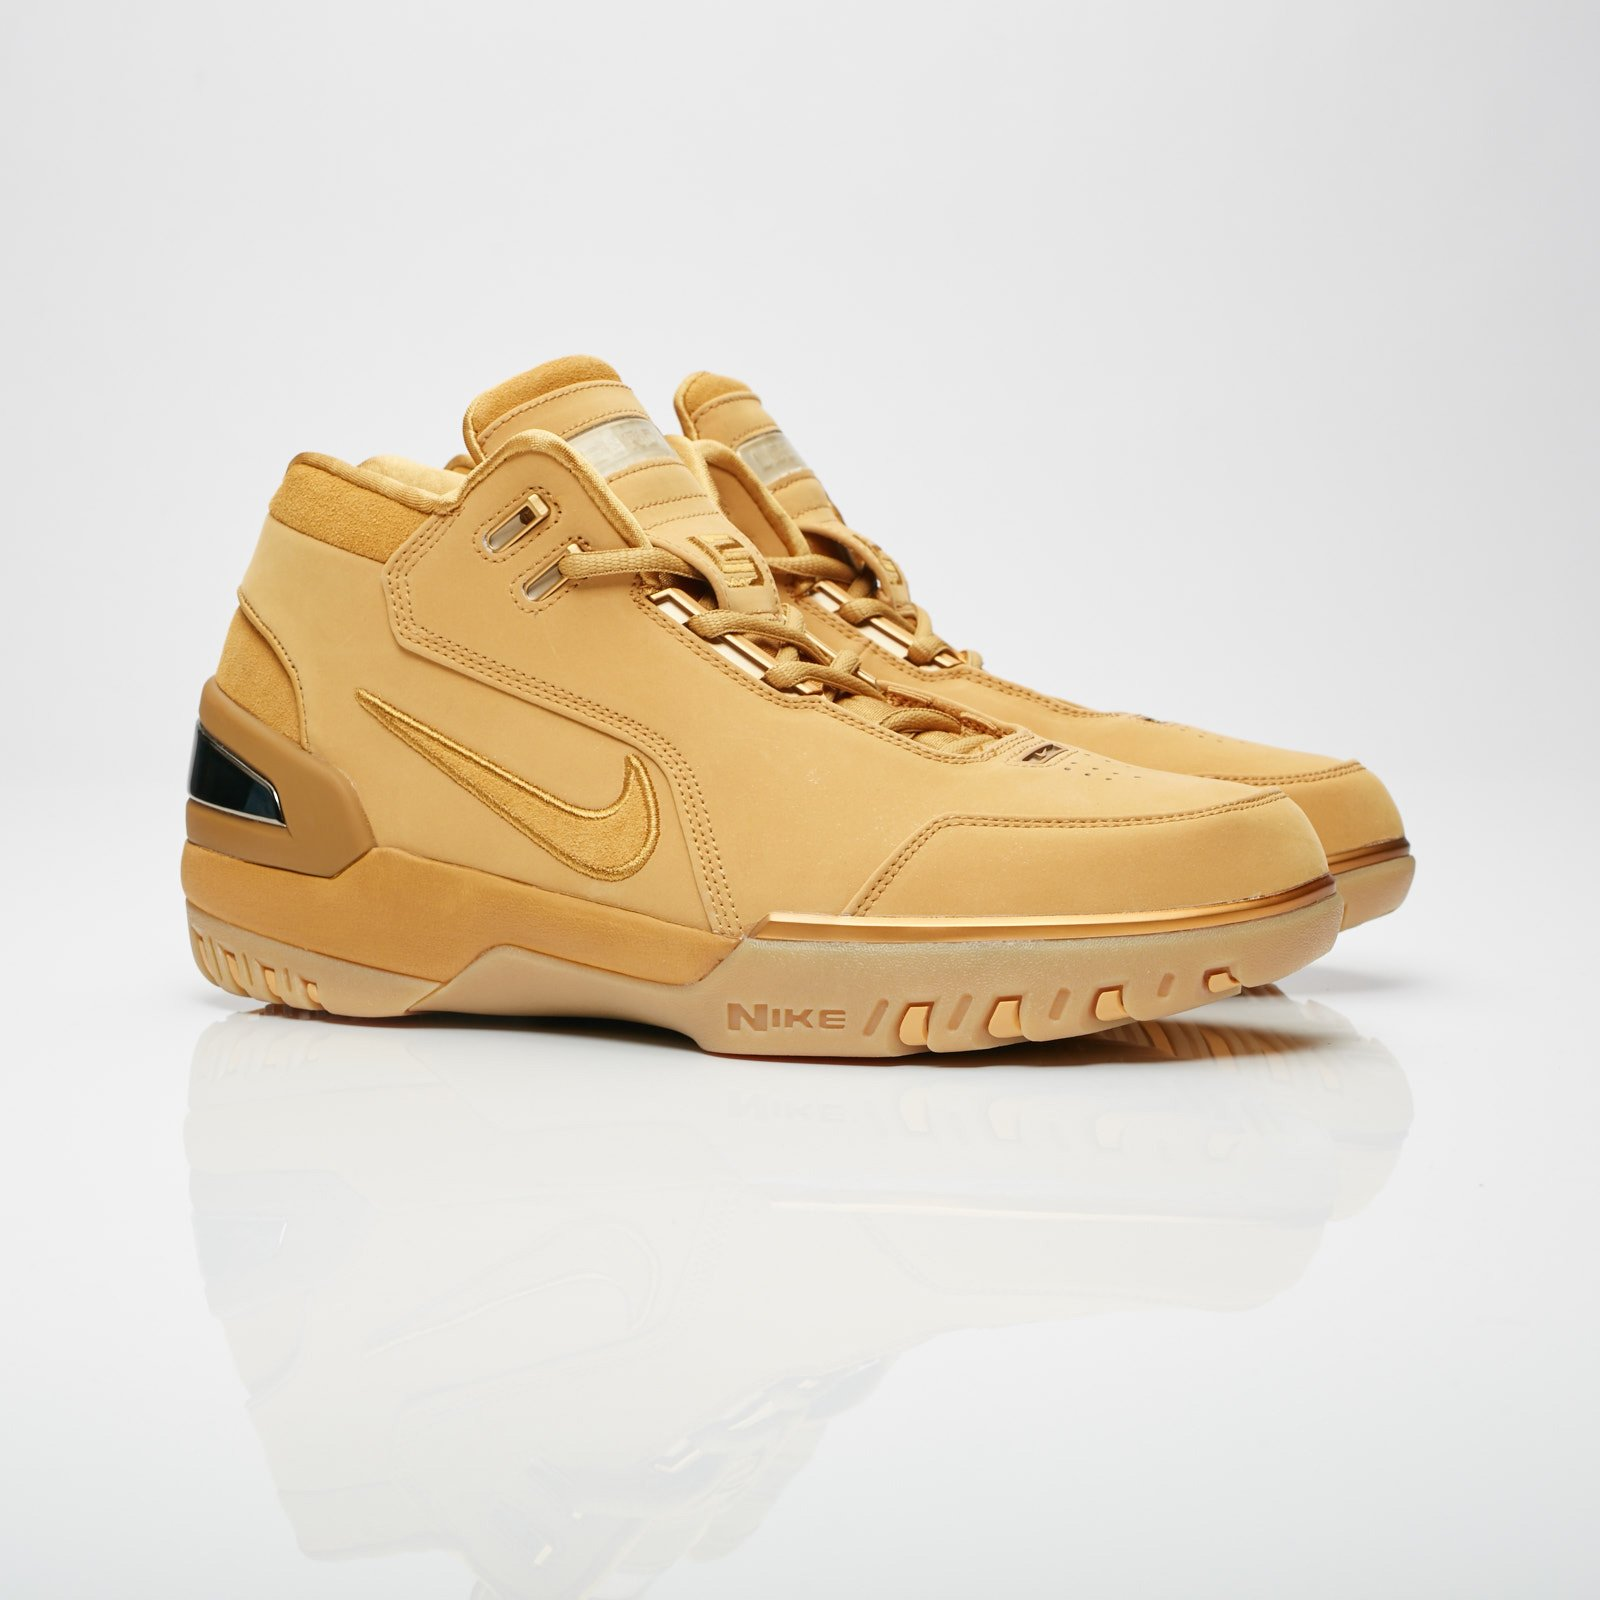 size 40 7d906 17336 Nike Air Zoom Generation ASG QS - Aq0110-700 - Sneakersnstuff ...